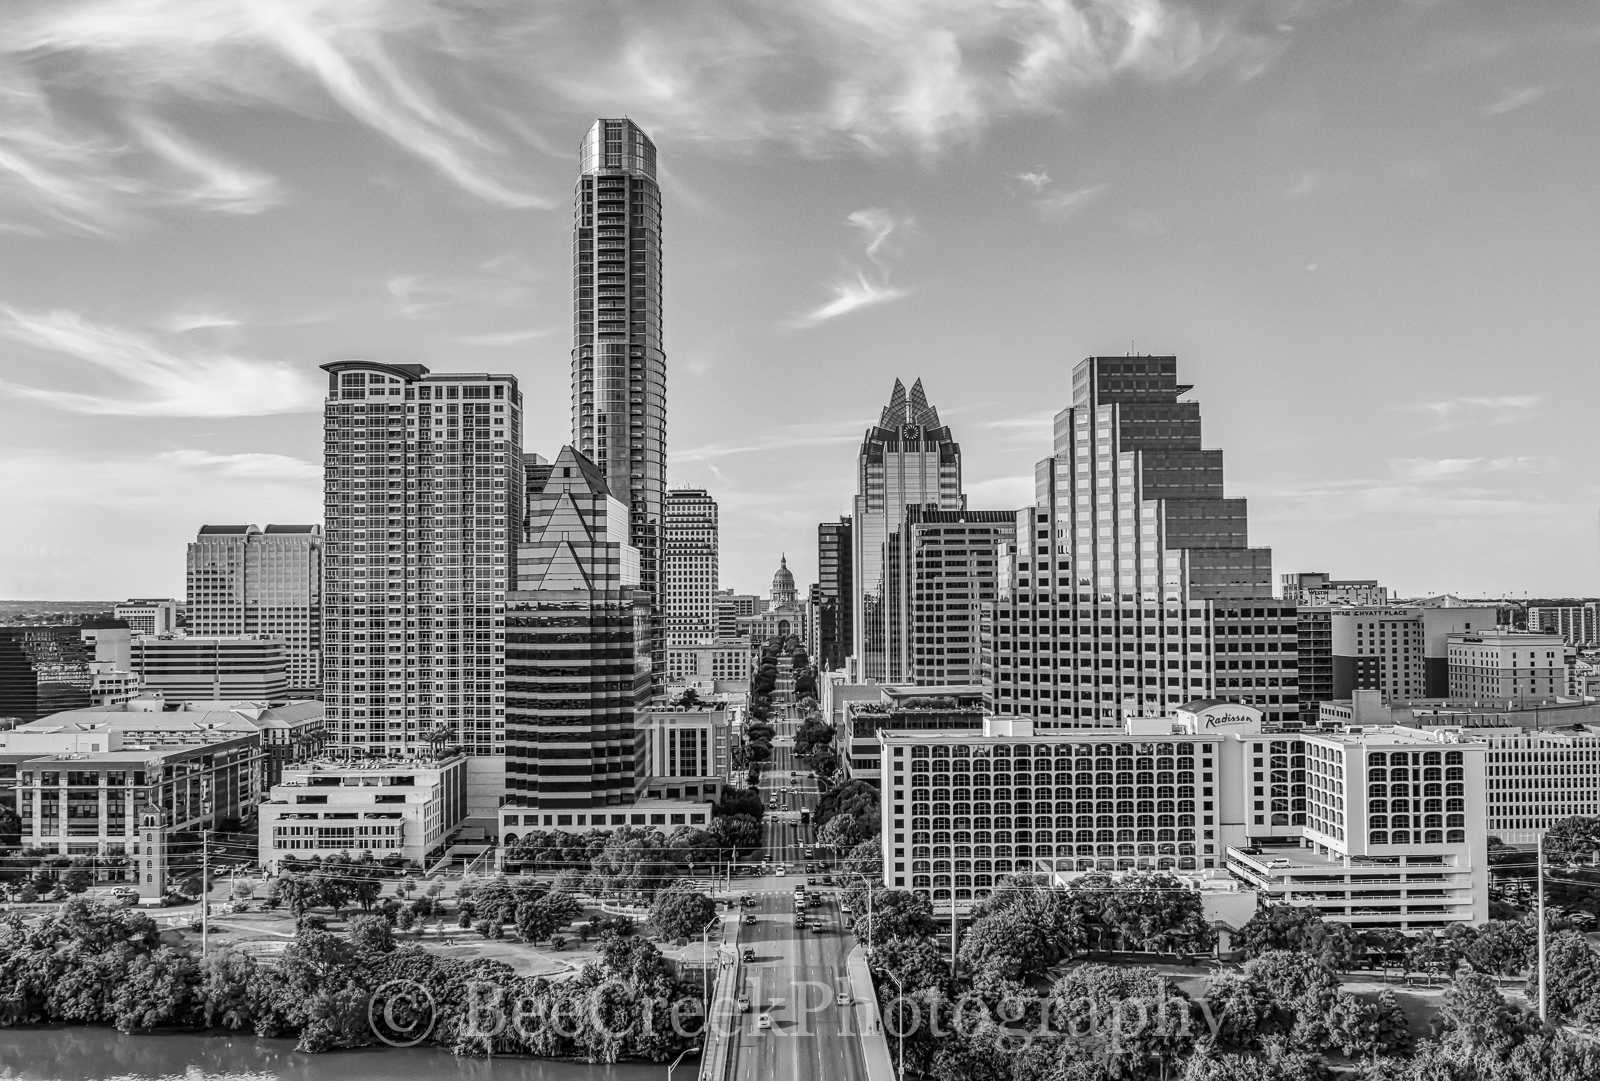 Austin Skyline in Black and White, aerial, austin skyline, downtown, skyline, city, cityscape, black and white, BW, Congress Ave, high-rise, buildings, Frost, Austonian, One Congress Plaza, Radisson, , photo